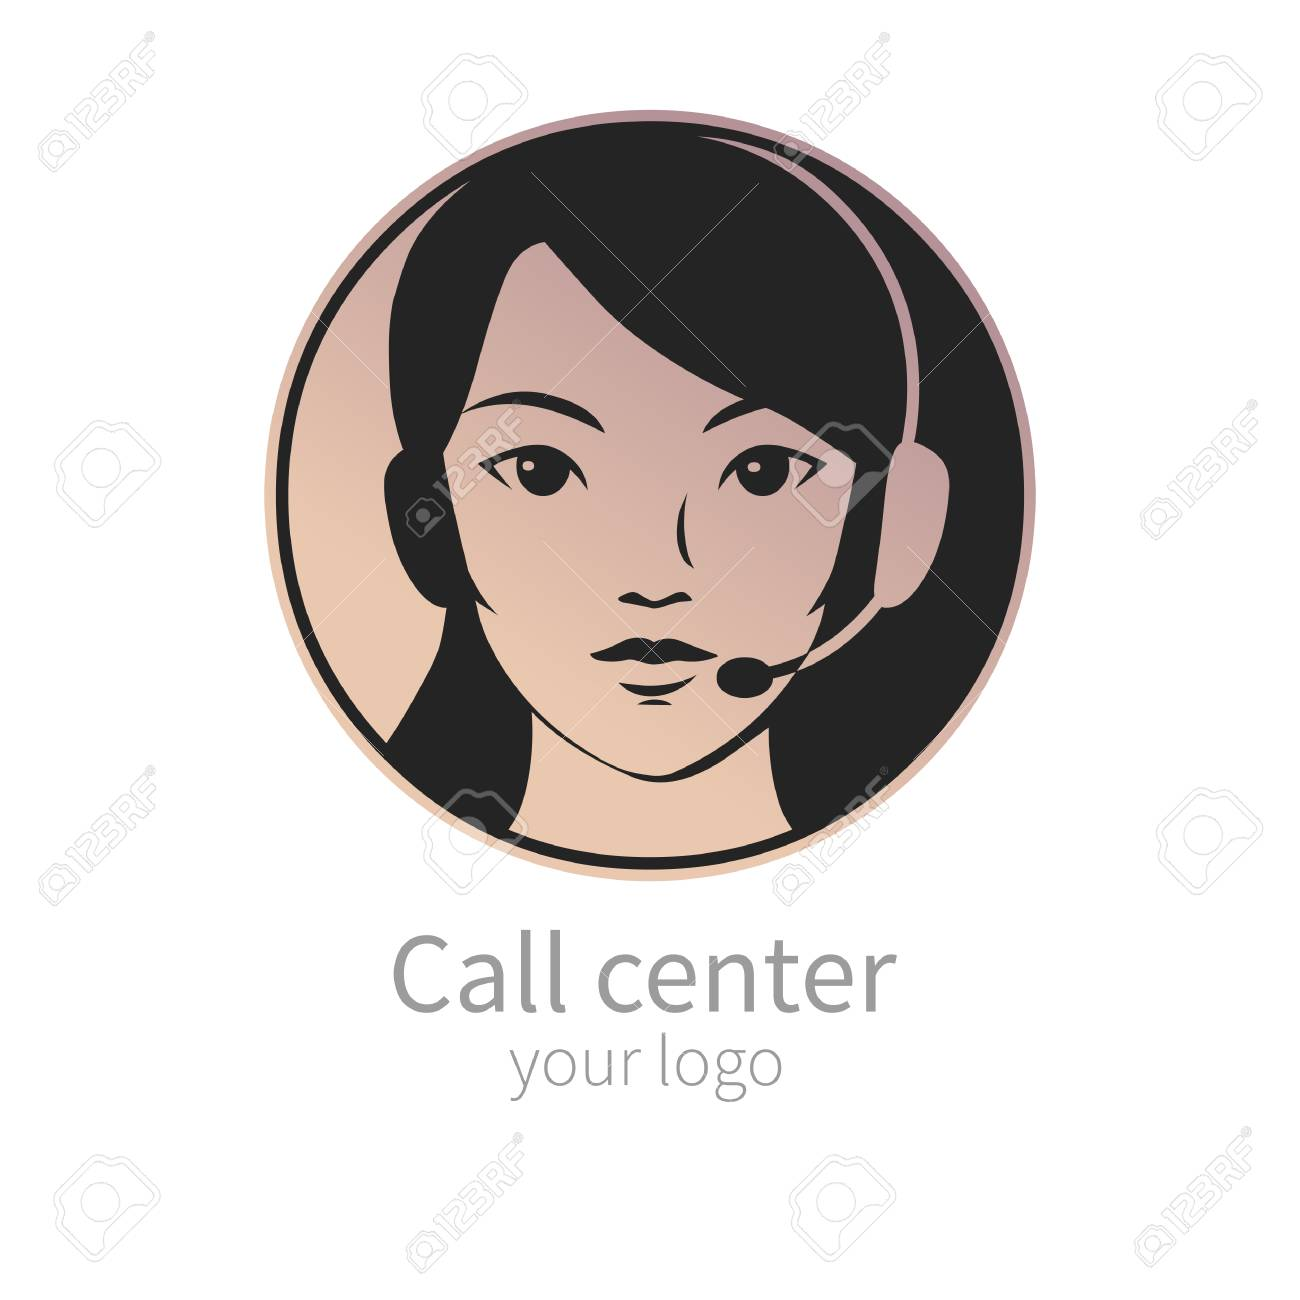 pretty operator of call center vector template for your logo royalty free cliparts vectors and stock illustration image 110206901 pretty operator of call center vector template for your logo